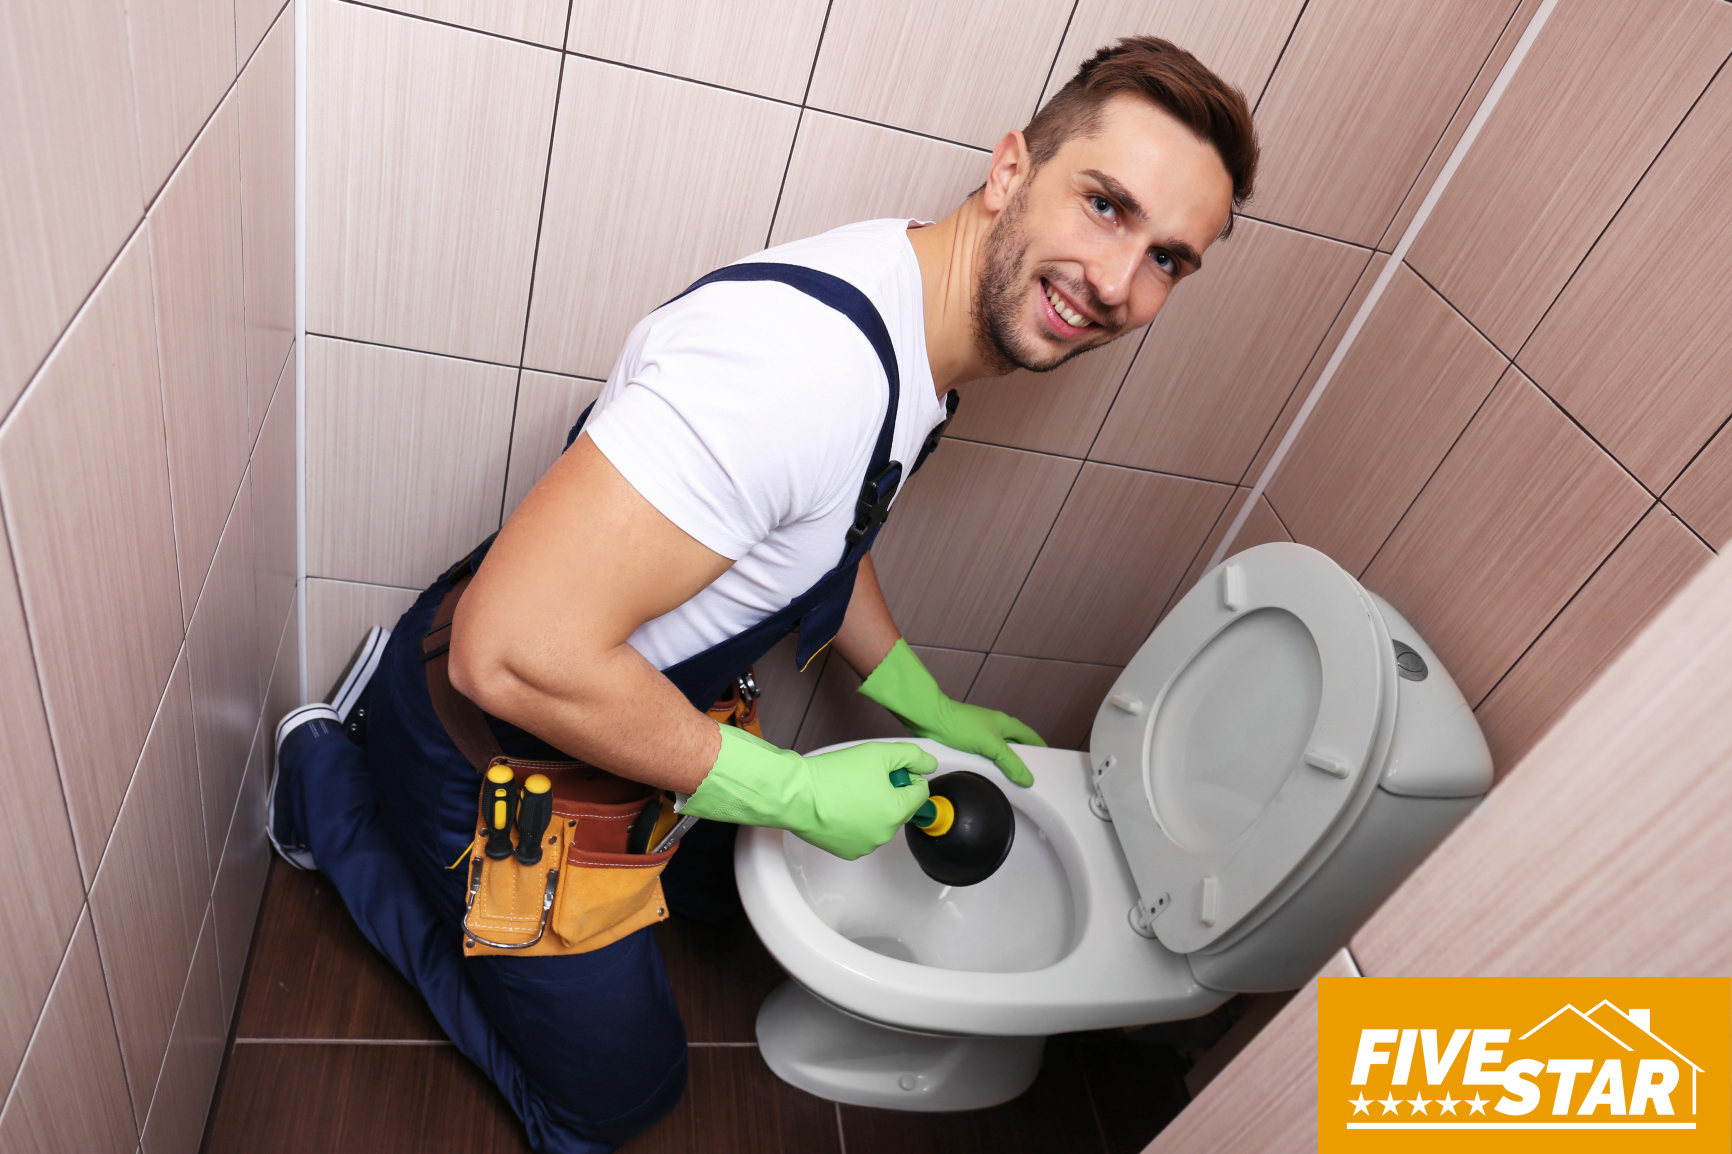 Did you know…? - By not clearing a clogged toilet right away, it can cause damage to the delicate parts that keep the toilet flushing. Just call us at 864-530-0040 or click below!